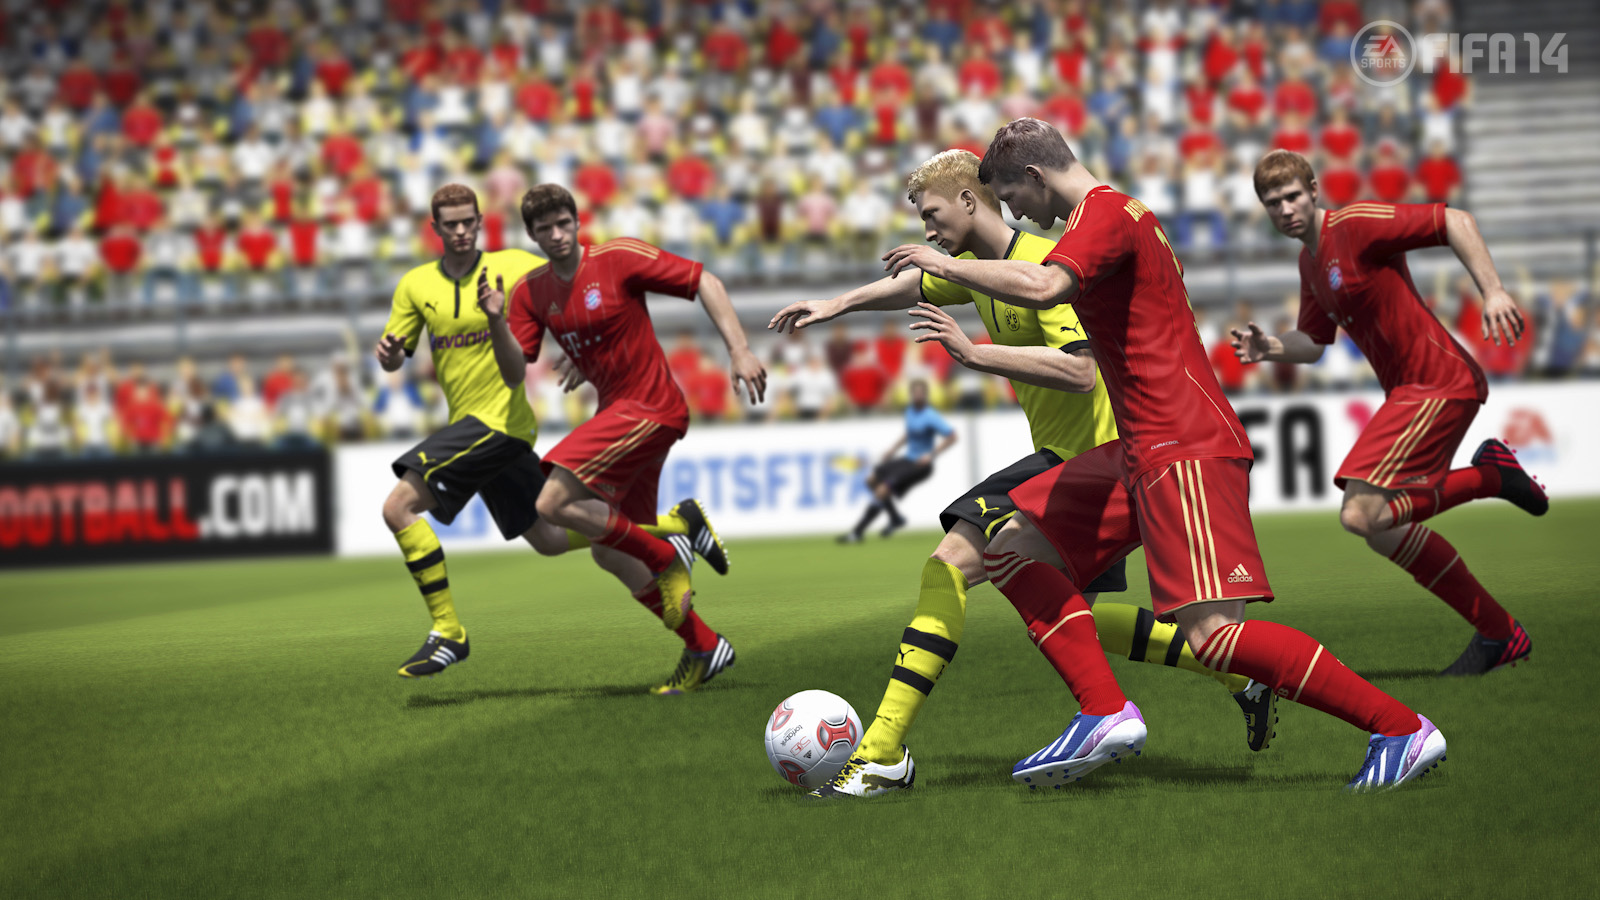 Pes 4 Demo Download Softonic